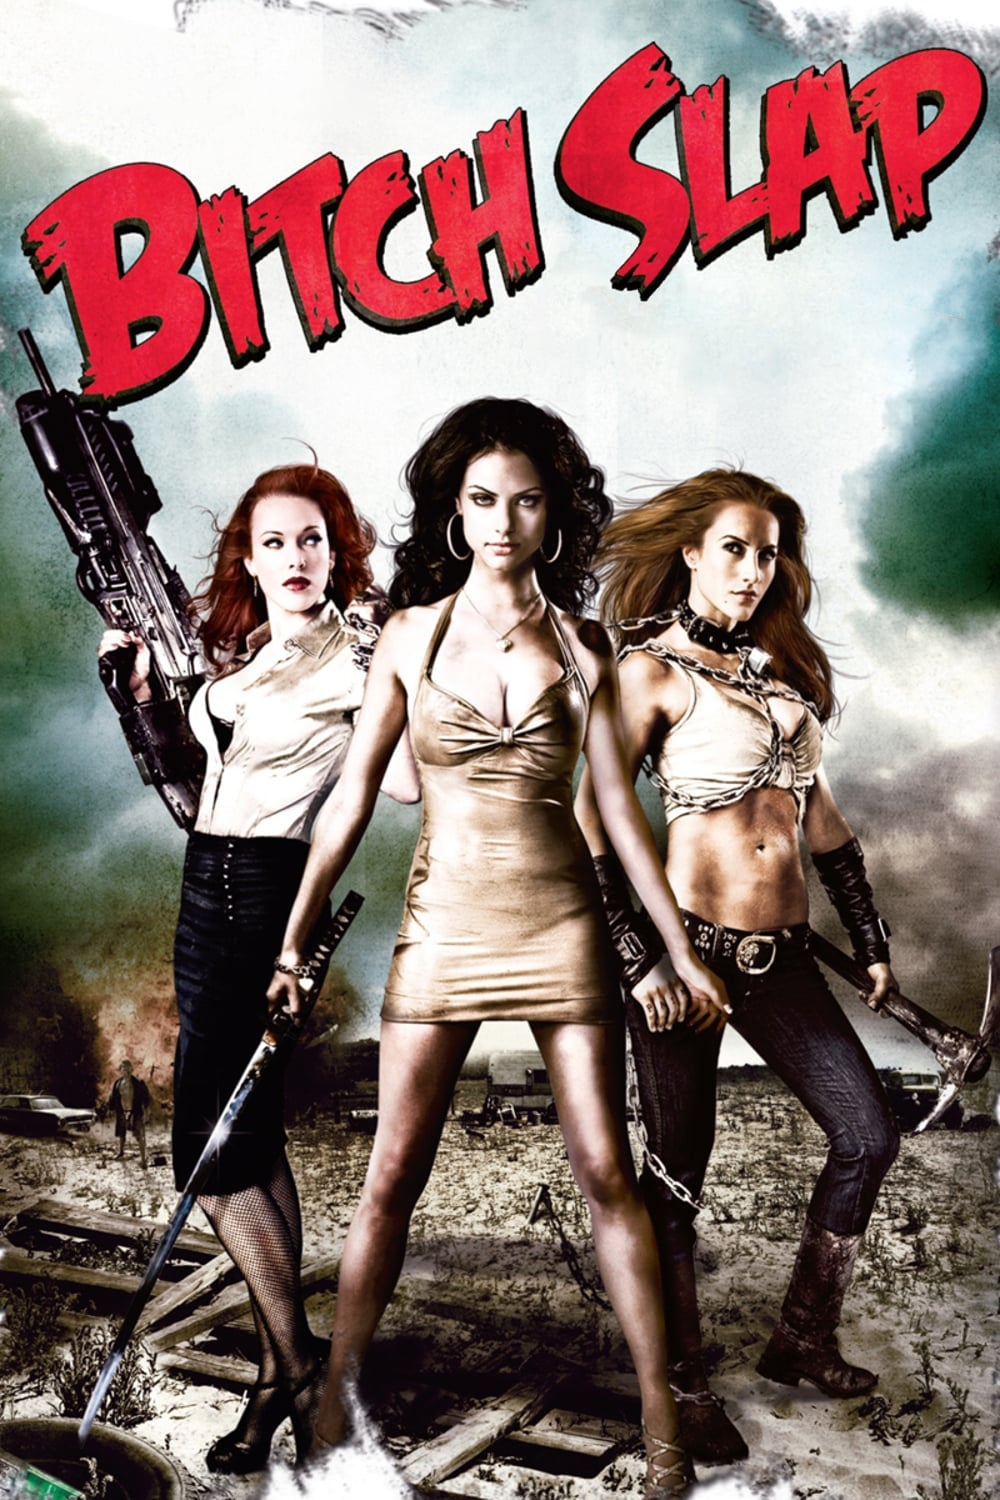 The blair bitch project